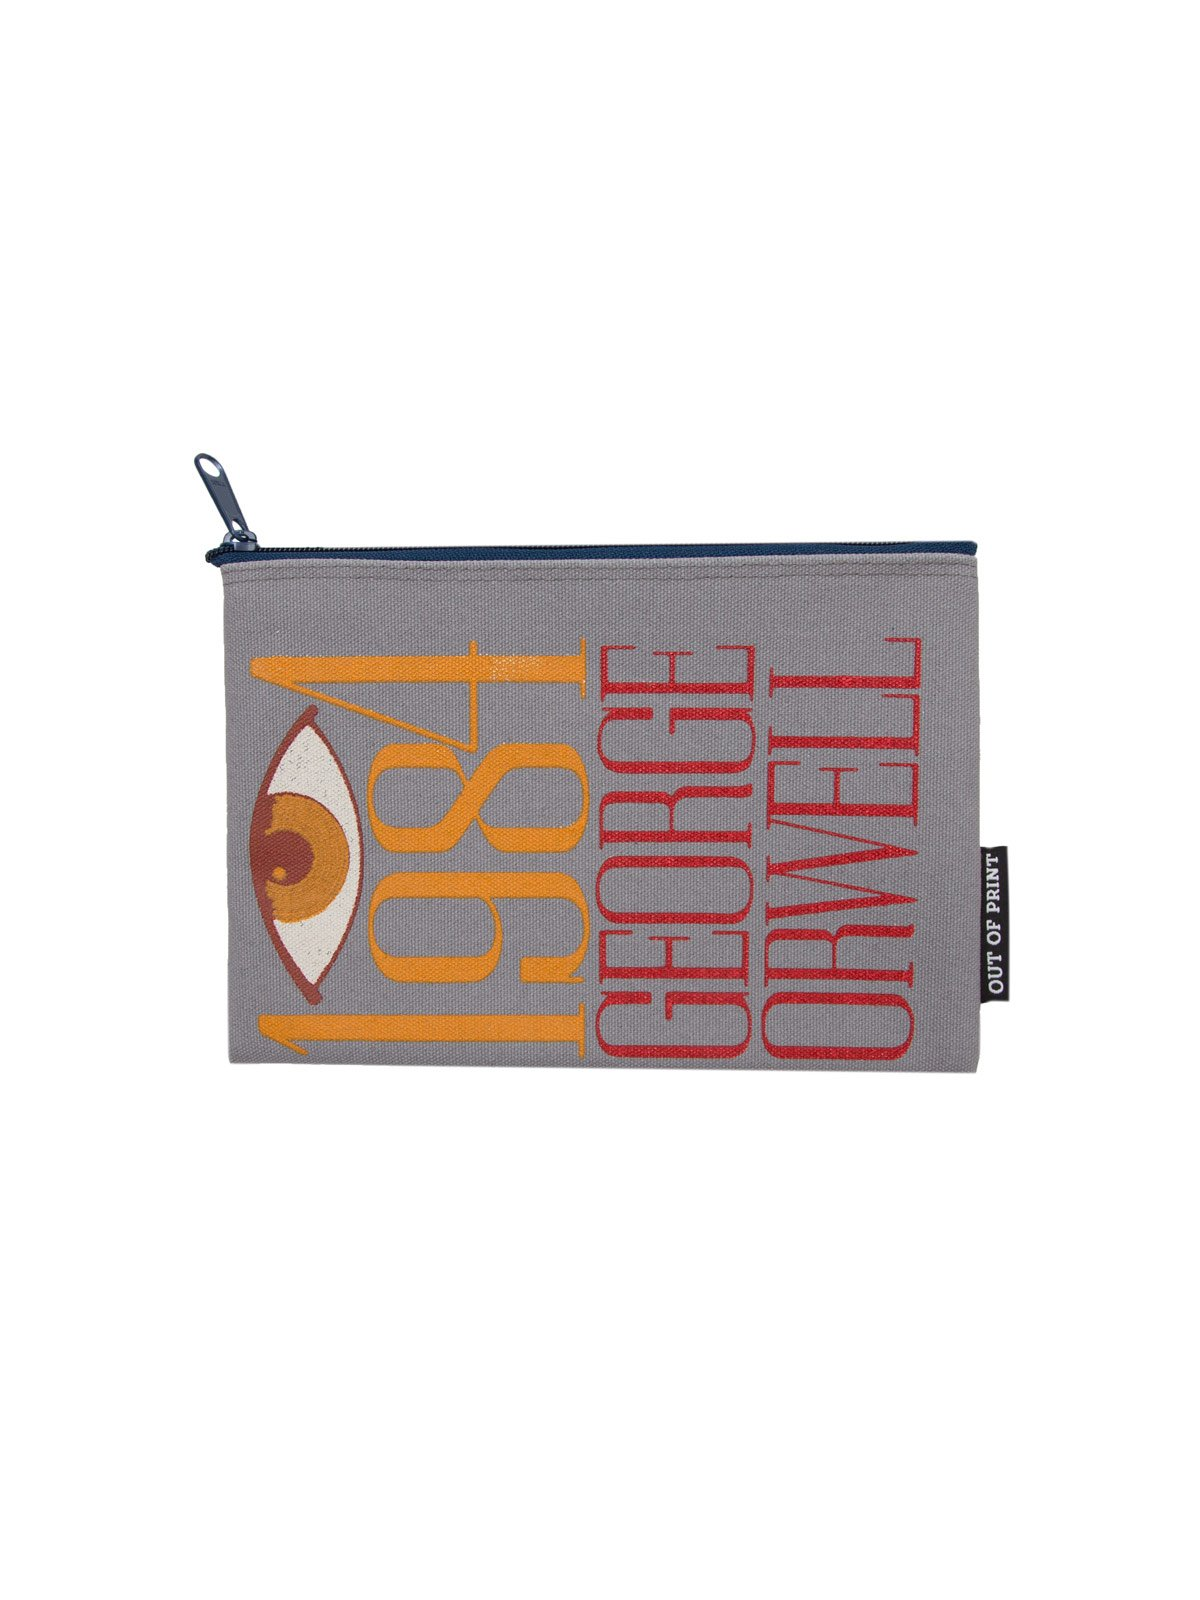 Image For 1984 George Orwell Pouch